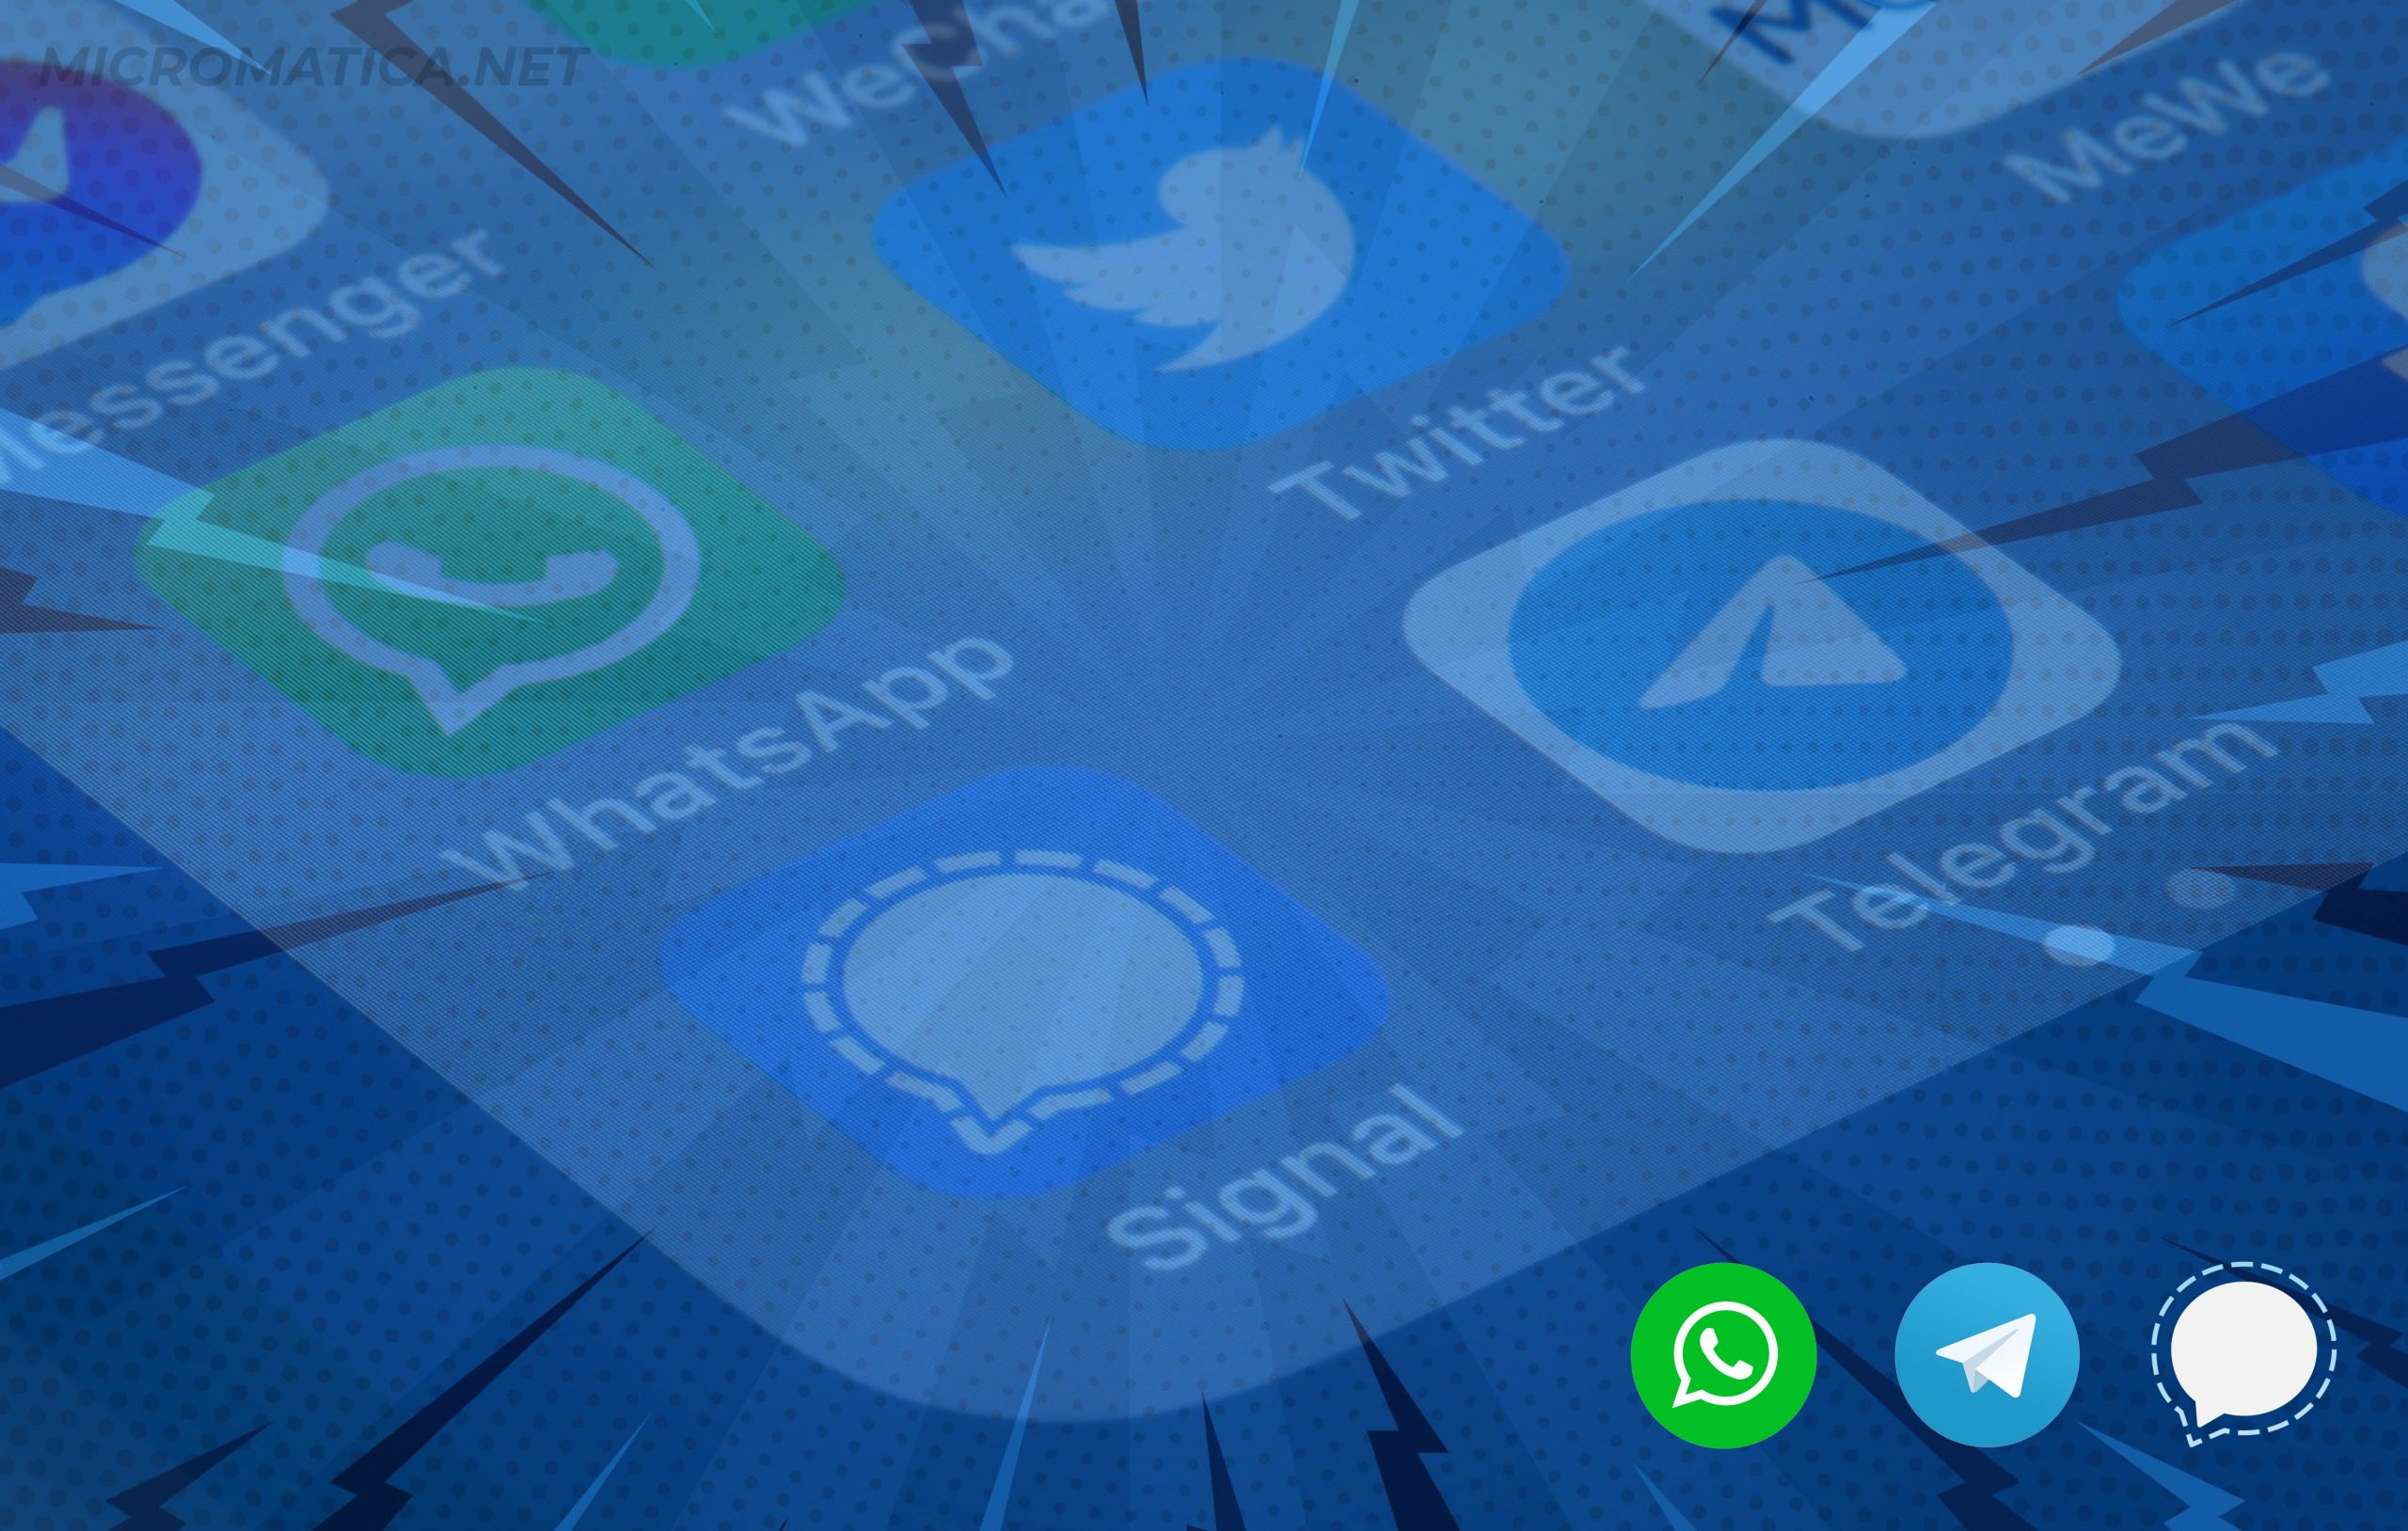 Whatsapp Signal Telegram